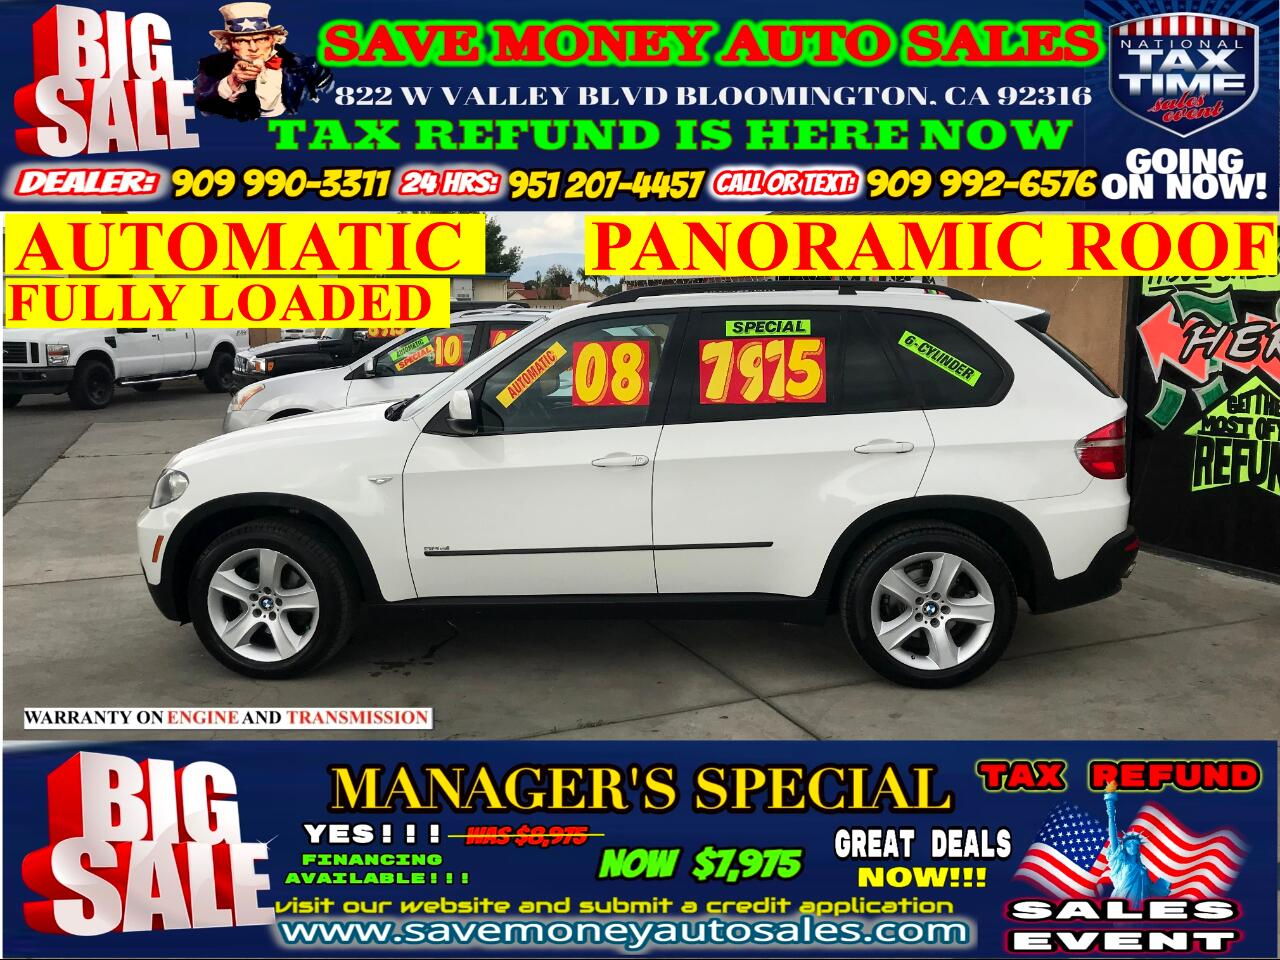 2008 BMW X5 3.0 SI>V6 BACK UP CAMERA>NAVIGATION>PANORAMIC ROOF